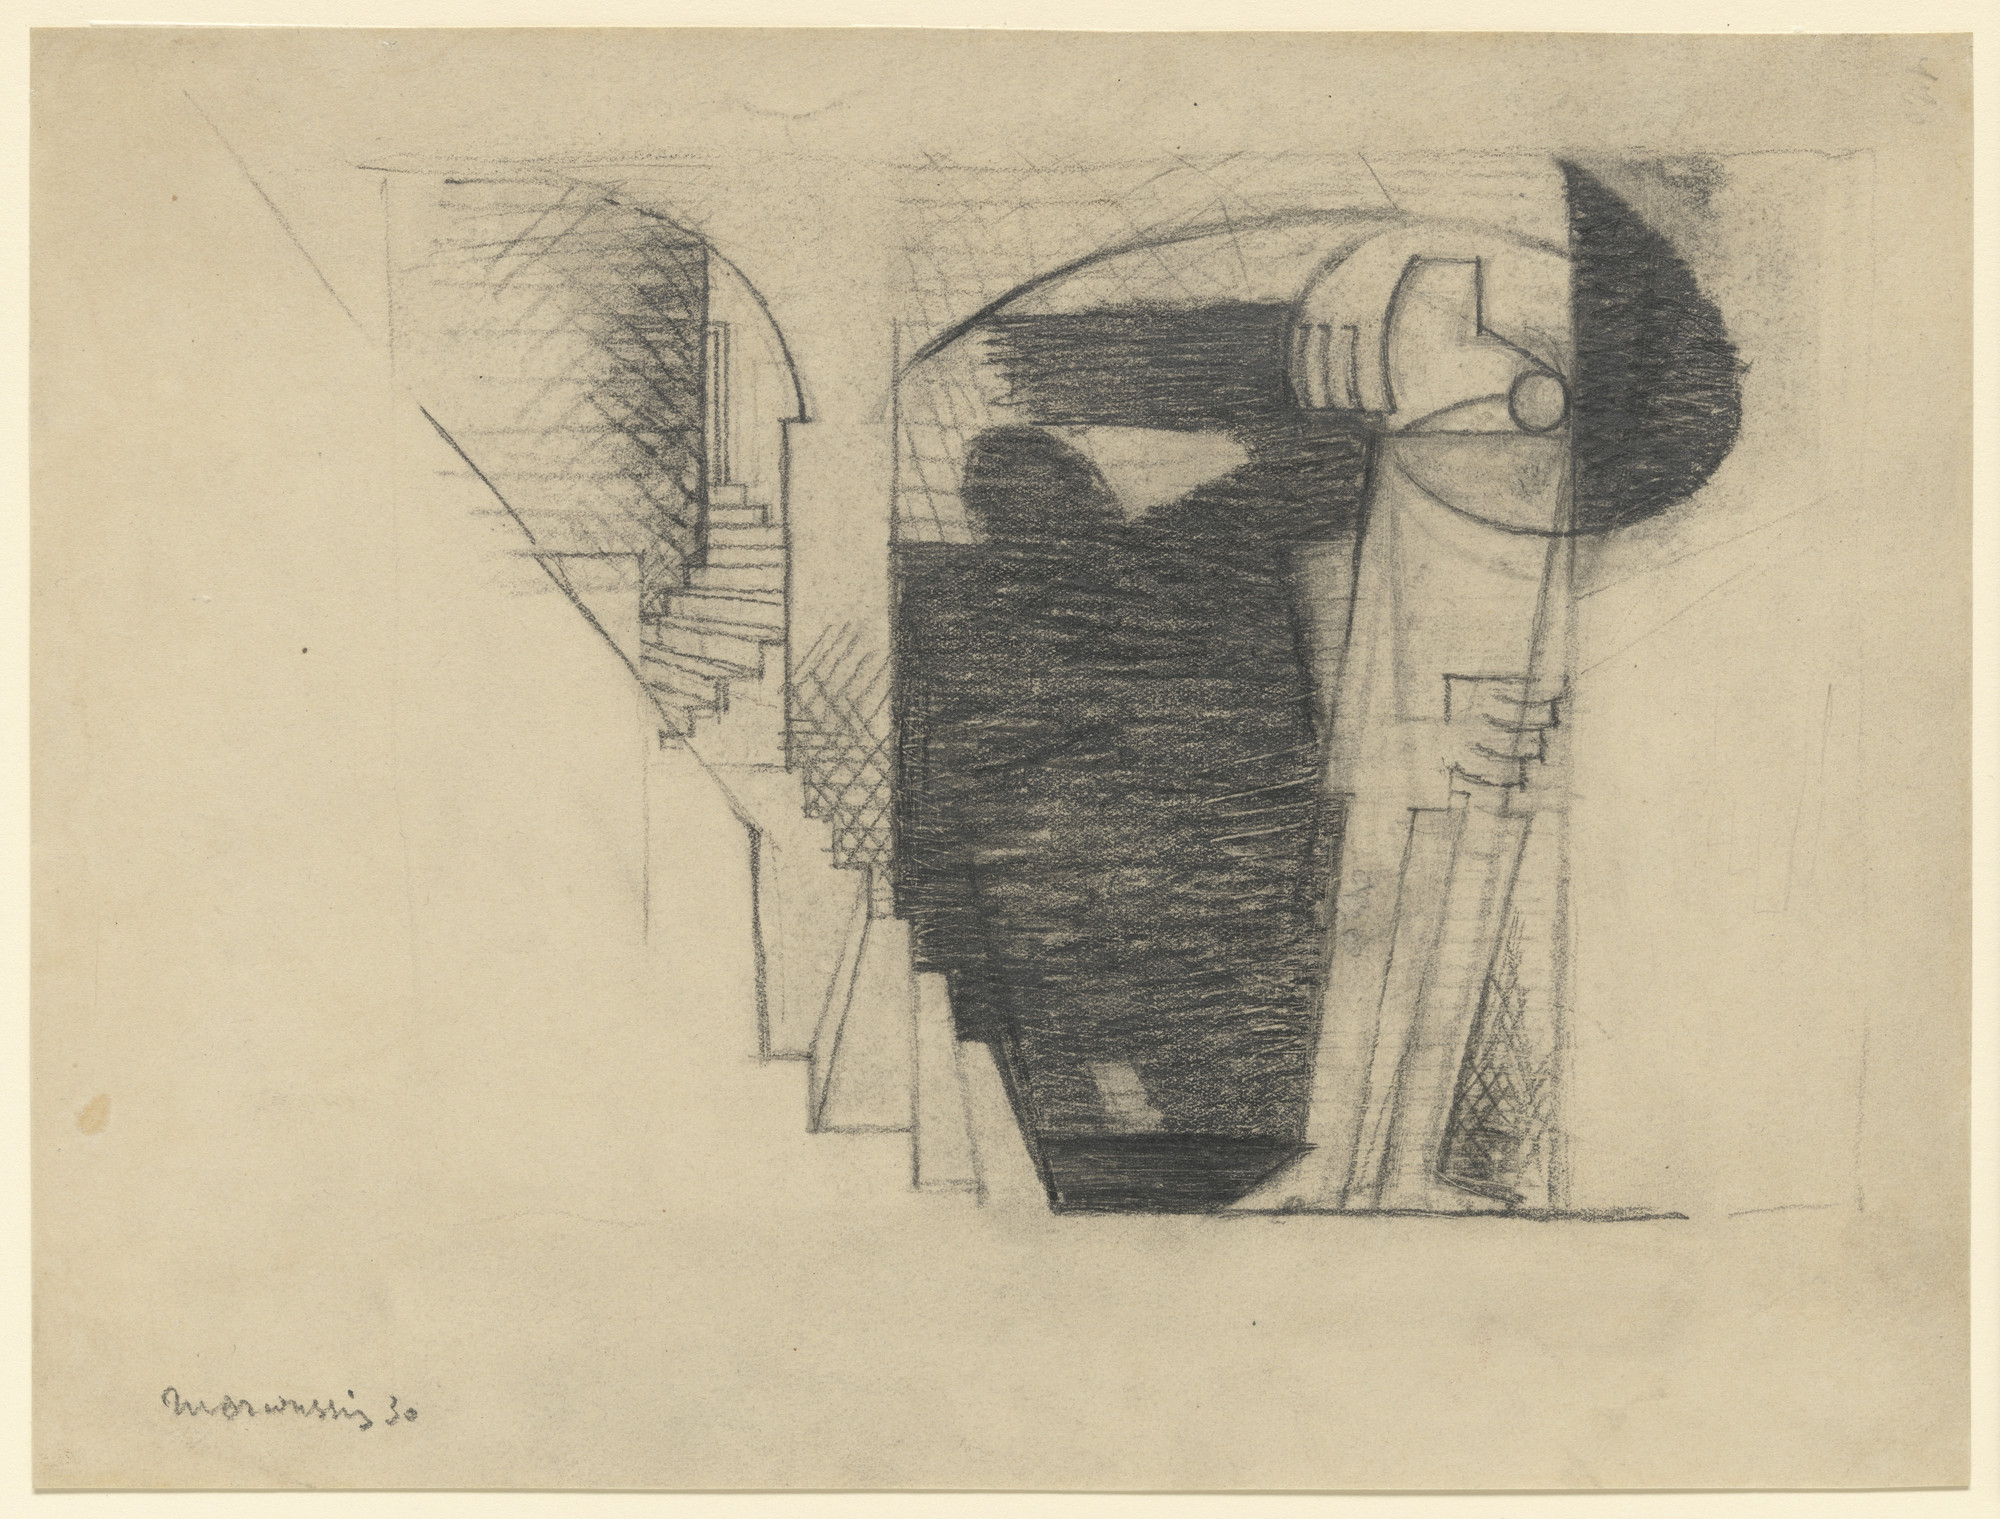 Louis Marcoussis. Stairway with Figure. 1930